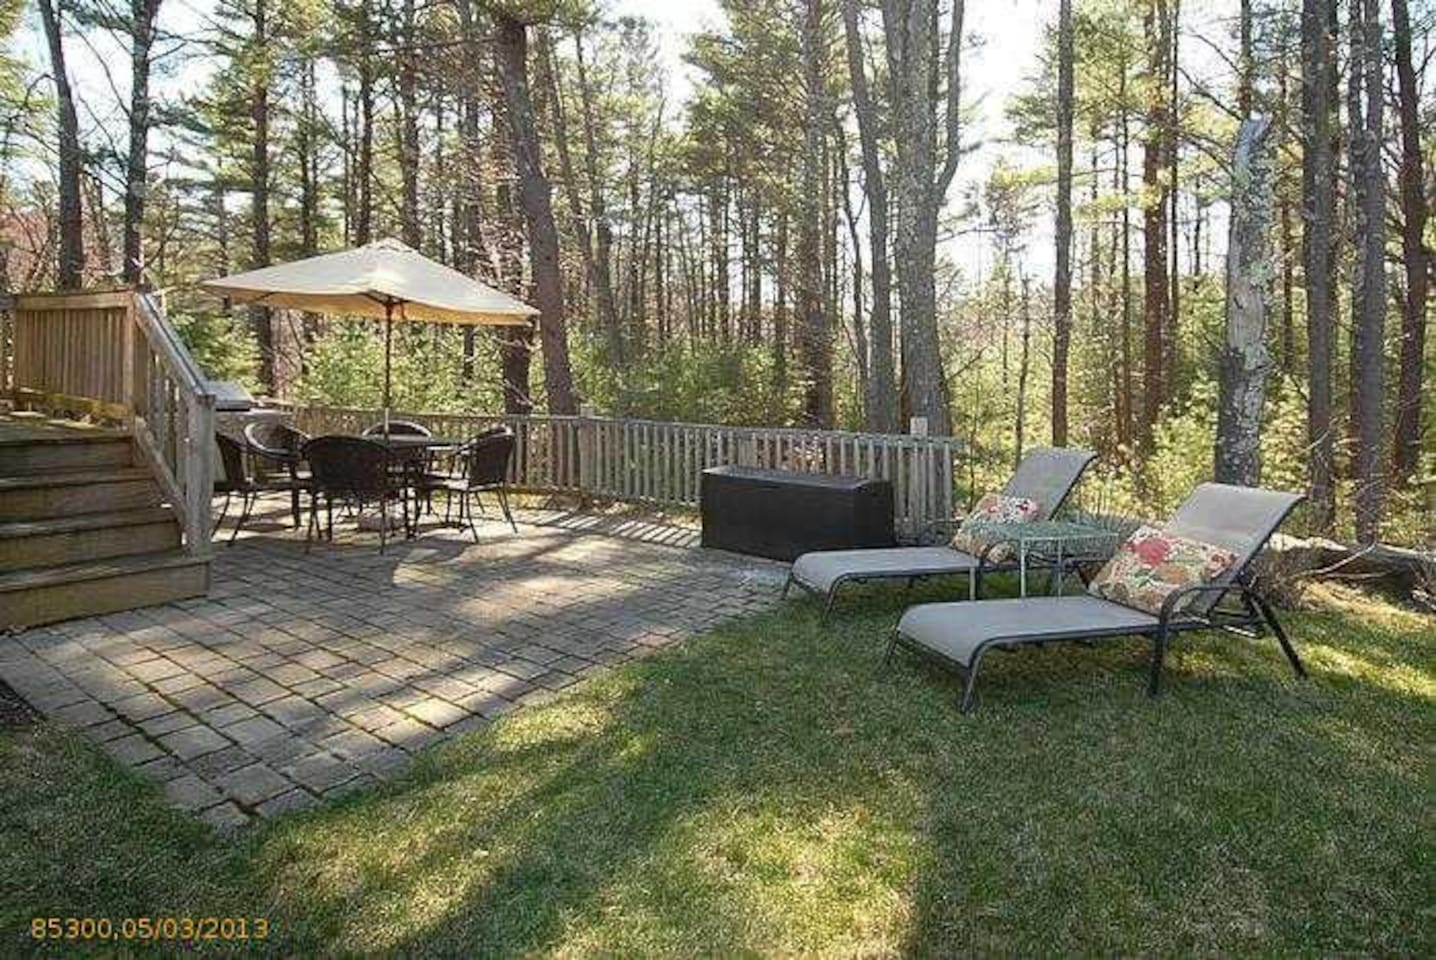 greywind house houses for rent in ogunquit maine united states